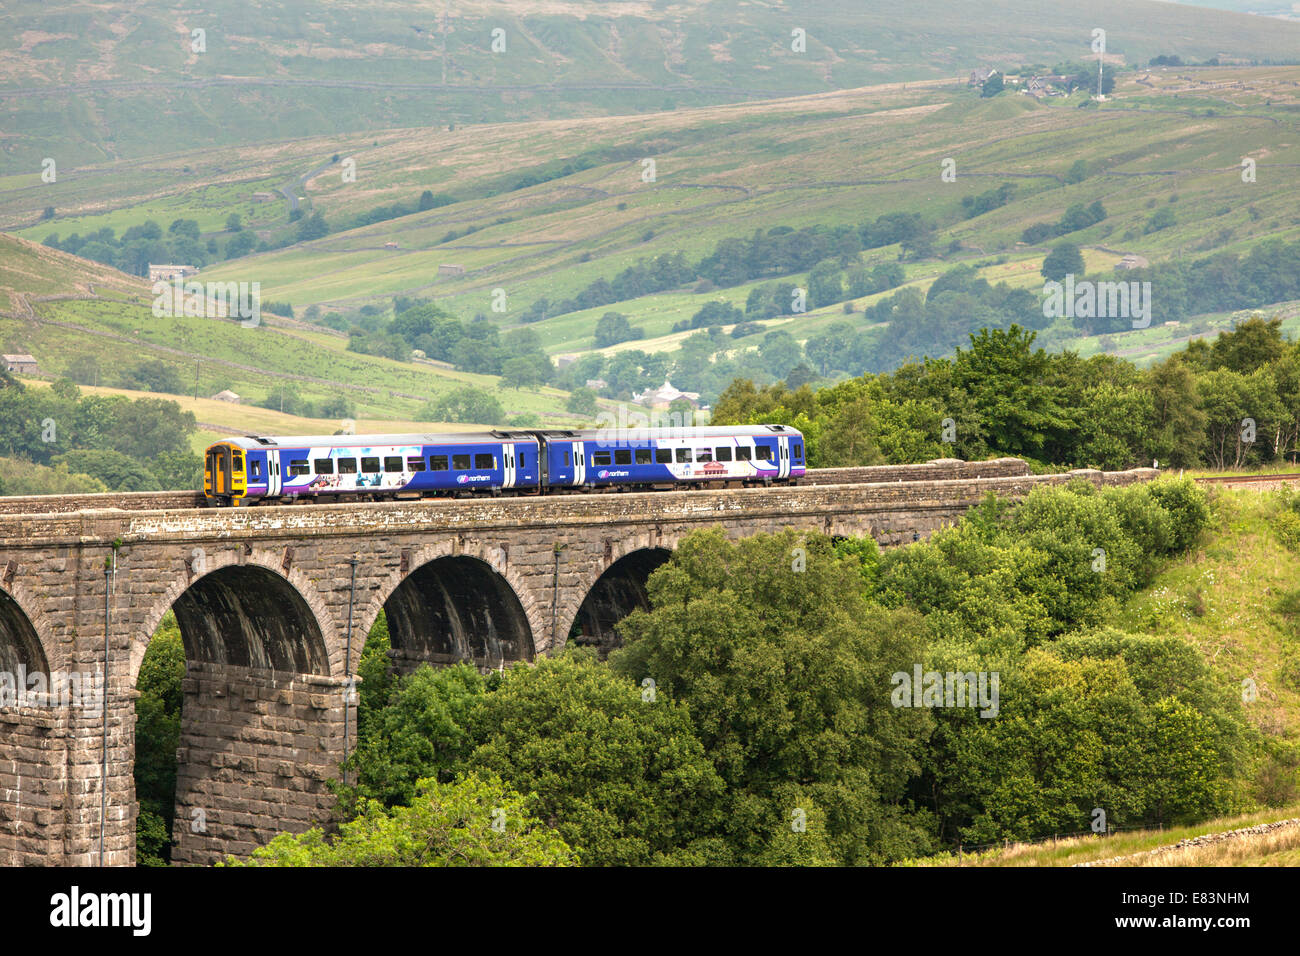 Train crossing the Dent Head Viaduct on the Settle-Carlisle Railway line, Yorkshire Dales, North Yorkshire, England, - Stock Image